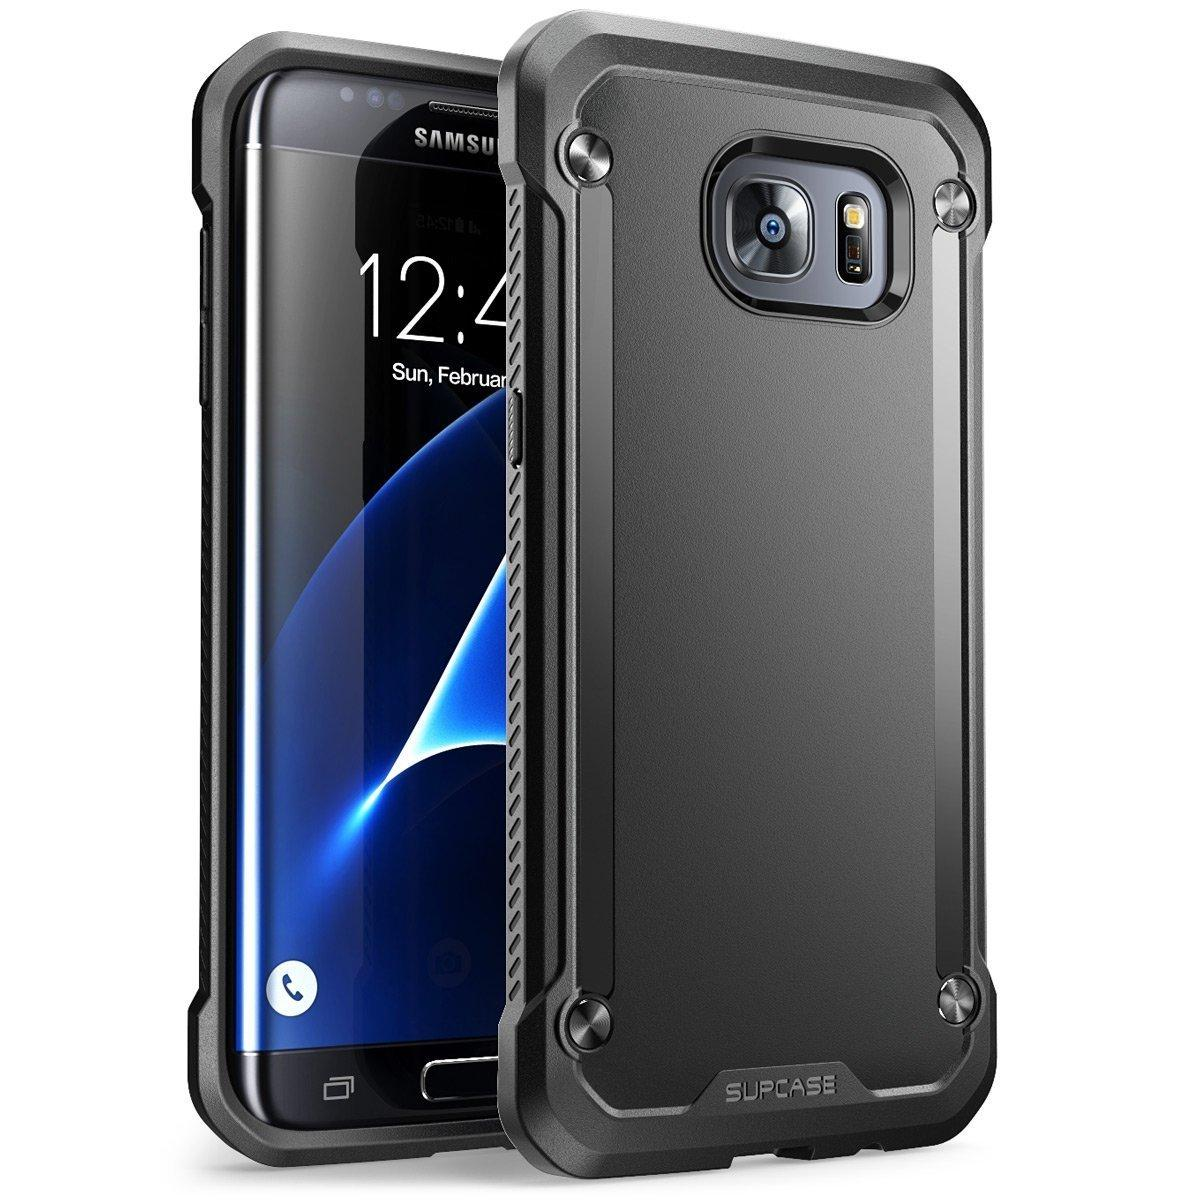 samsung s7 edge phone cases shockproof